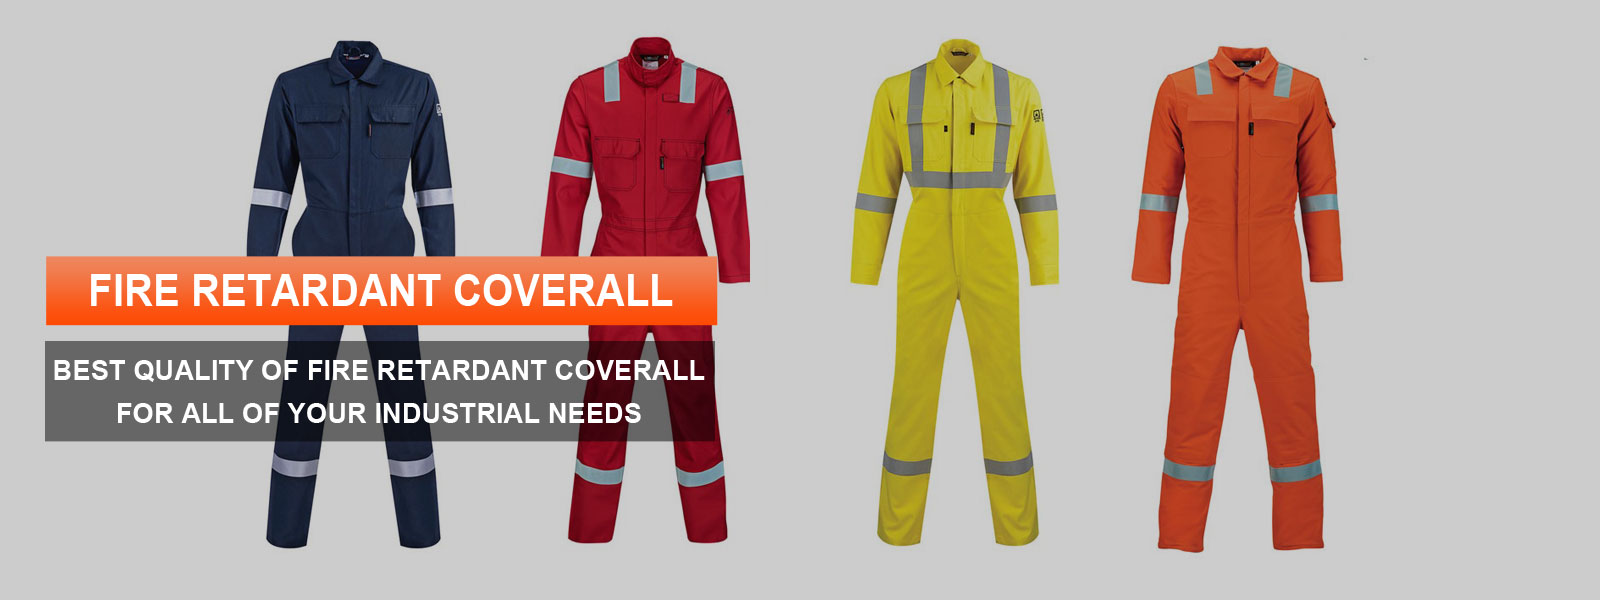 Fire Retardant Coverall Manufacturers in Uruguay